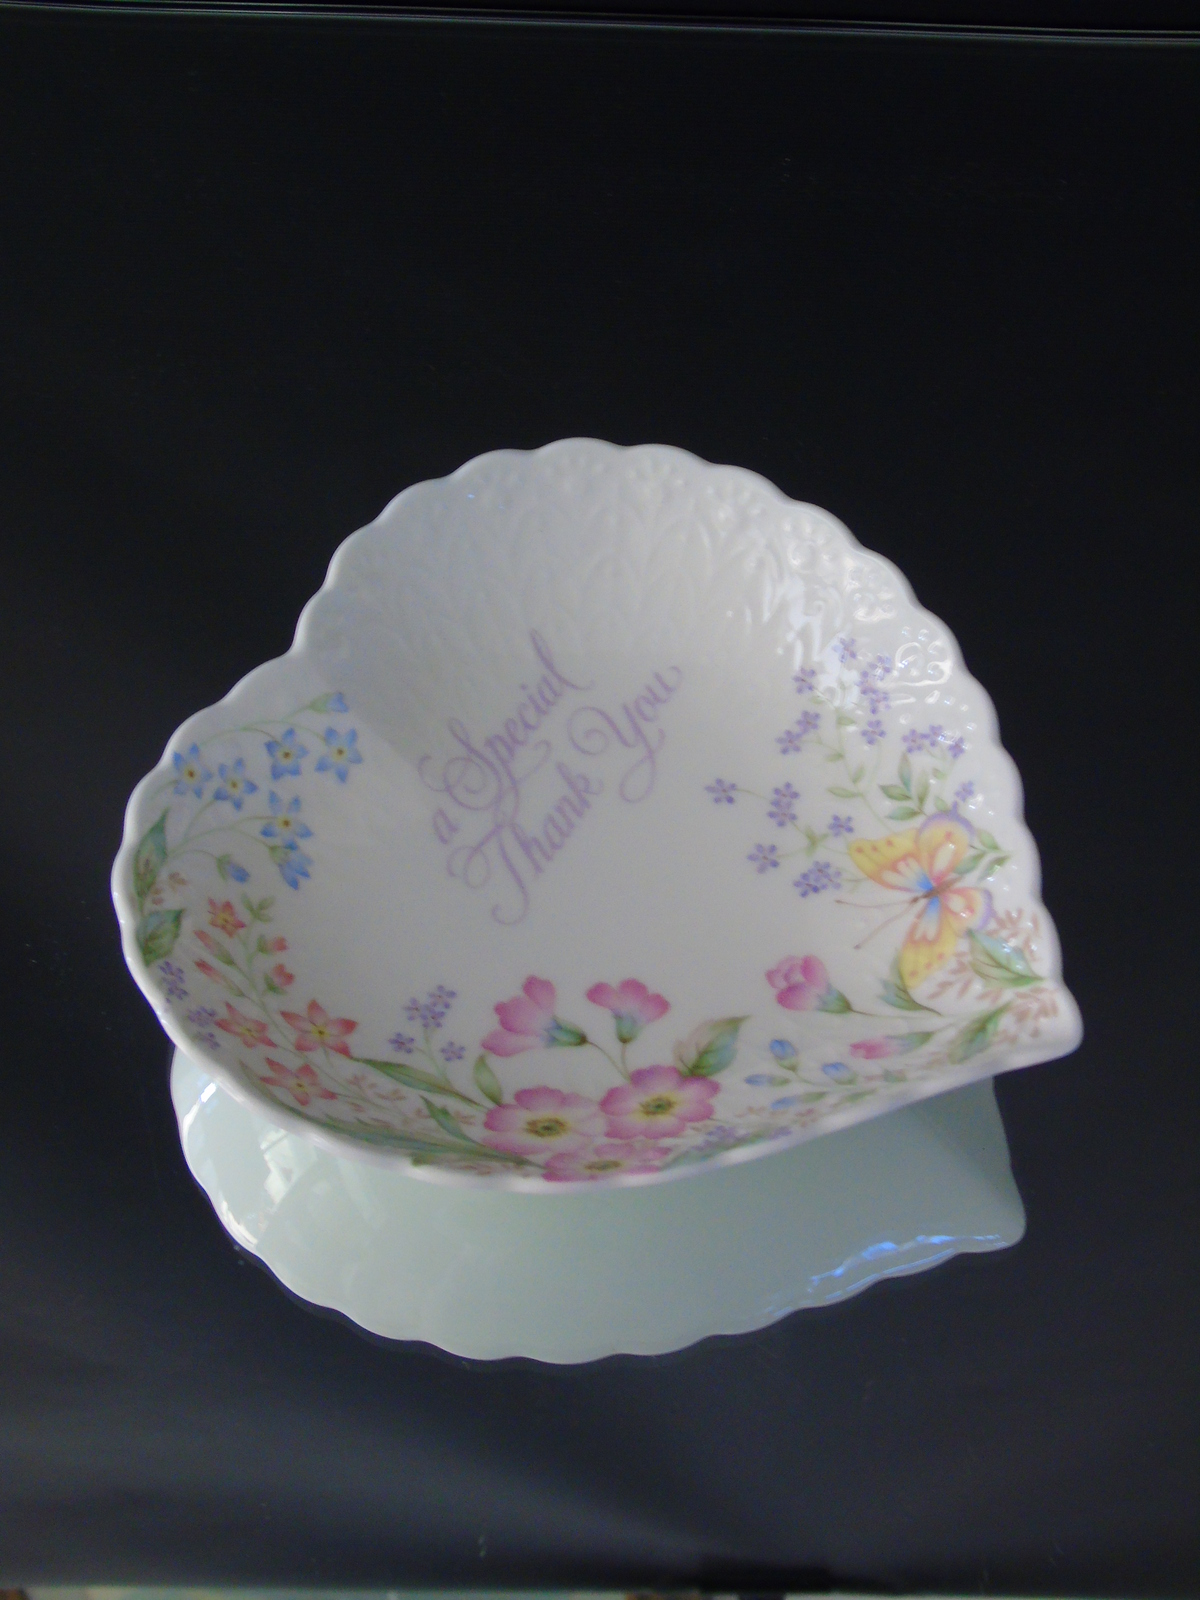 A special thank you heart shaped floral dish mikasa bone for Mikasa china